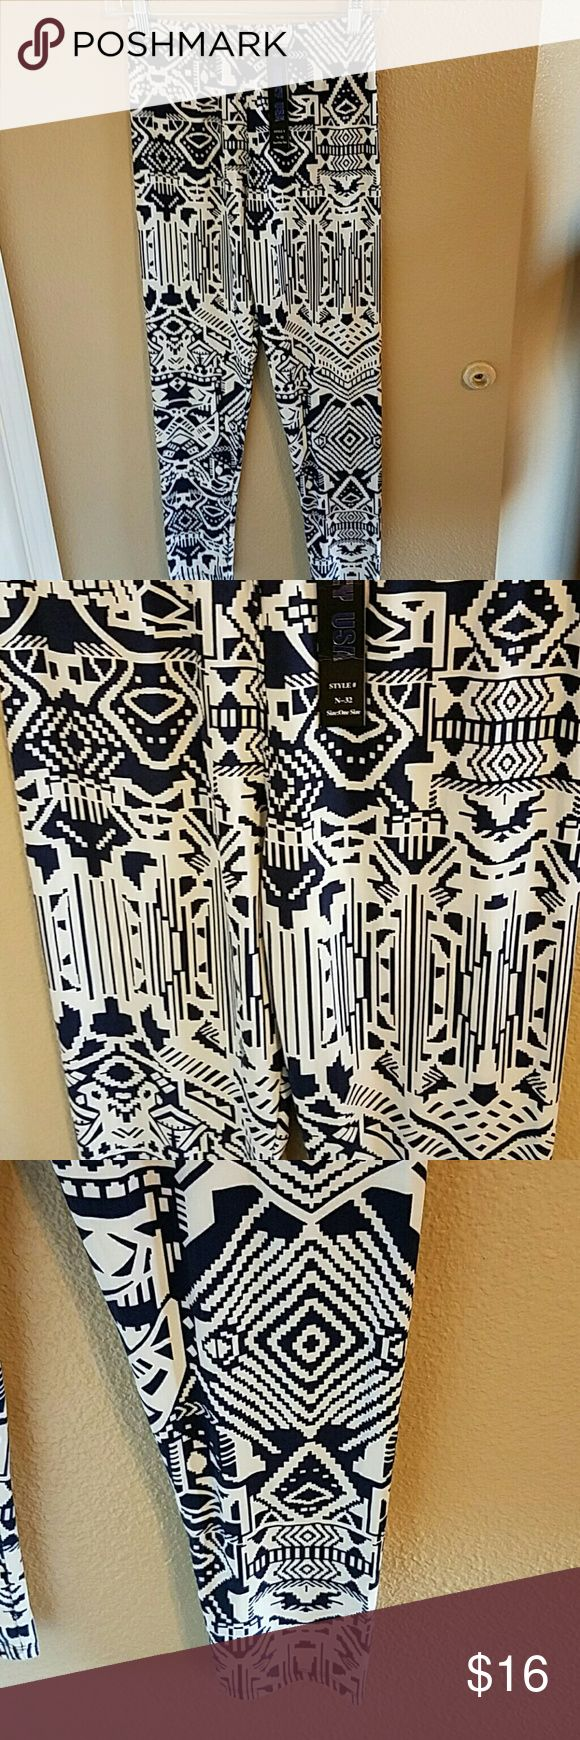 NWT Navy and White Stretchy Leggings NWT Adorable Aztec Navy Blue and White Leggings One Size fits Most. Extremely Soft and Stretchy with and Elasticized Waist Band. Purchsed from the amazing closet of scanon Boutique  Pants Leggings